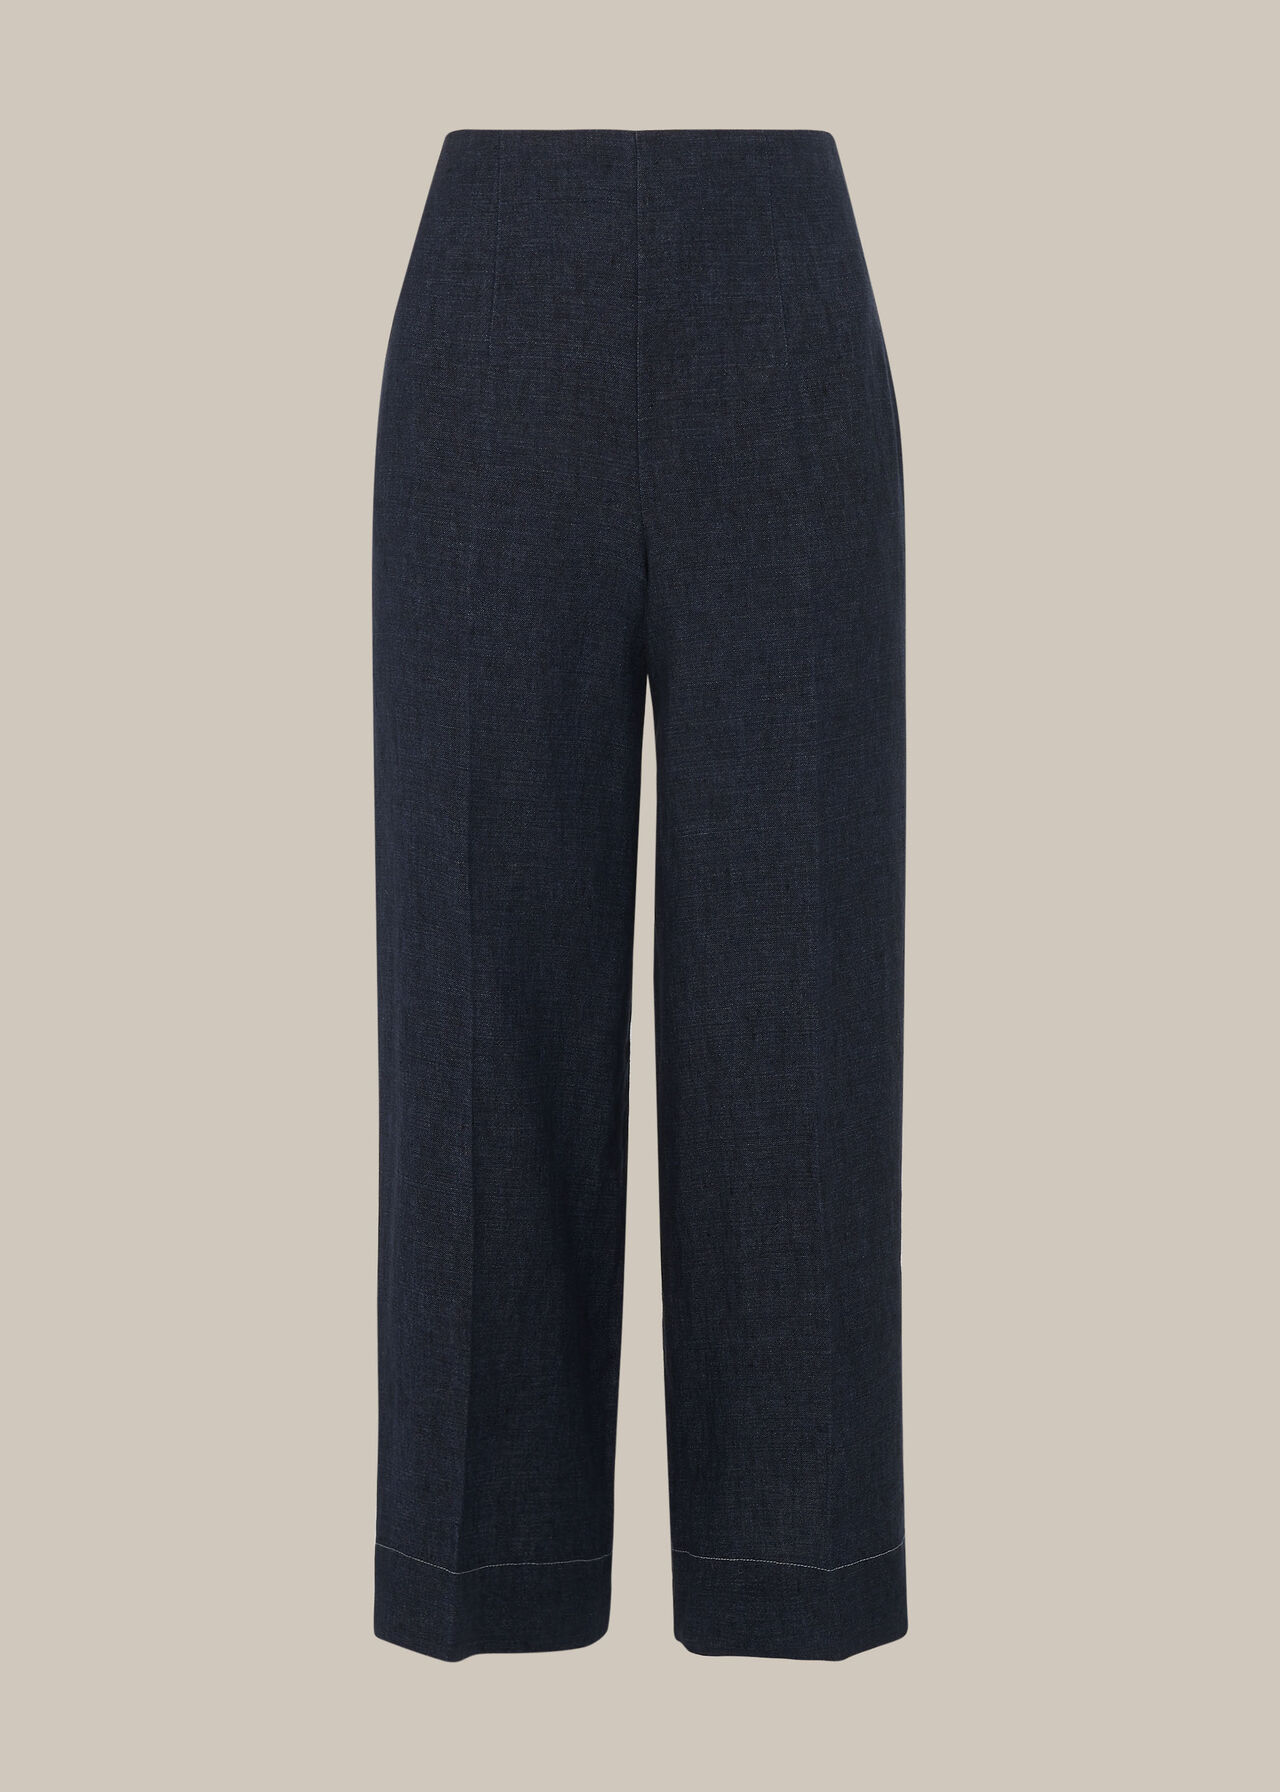 Indigo Linen Cropped Trouser Navy